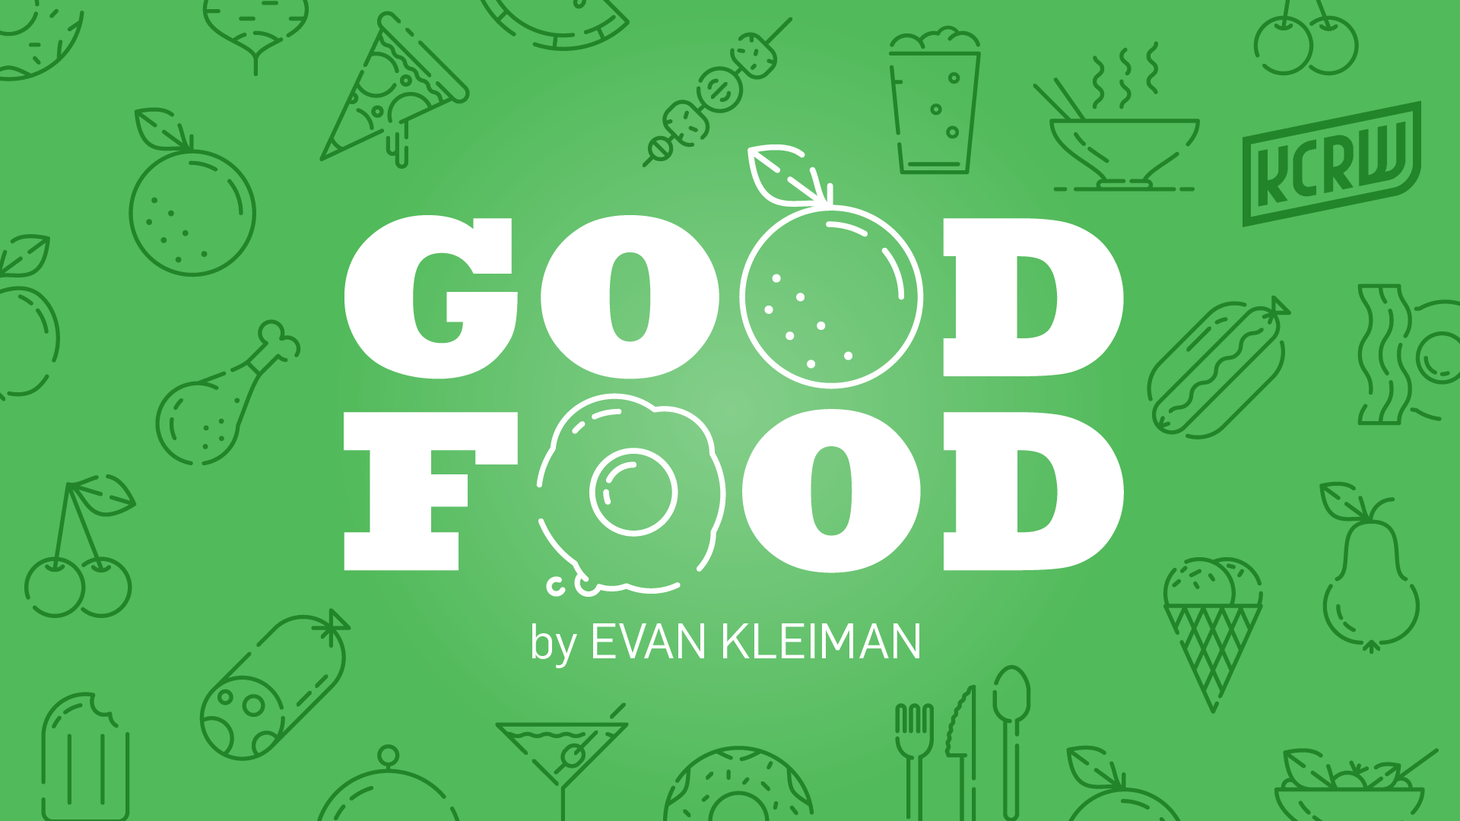 In this edition of KCRW's Good Food video podcast, host Evan Kleiman shows us how to create Turkish Tarator Sauce.